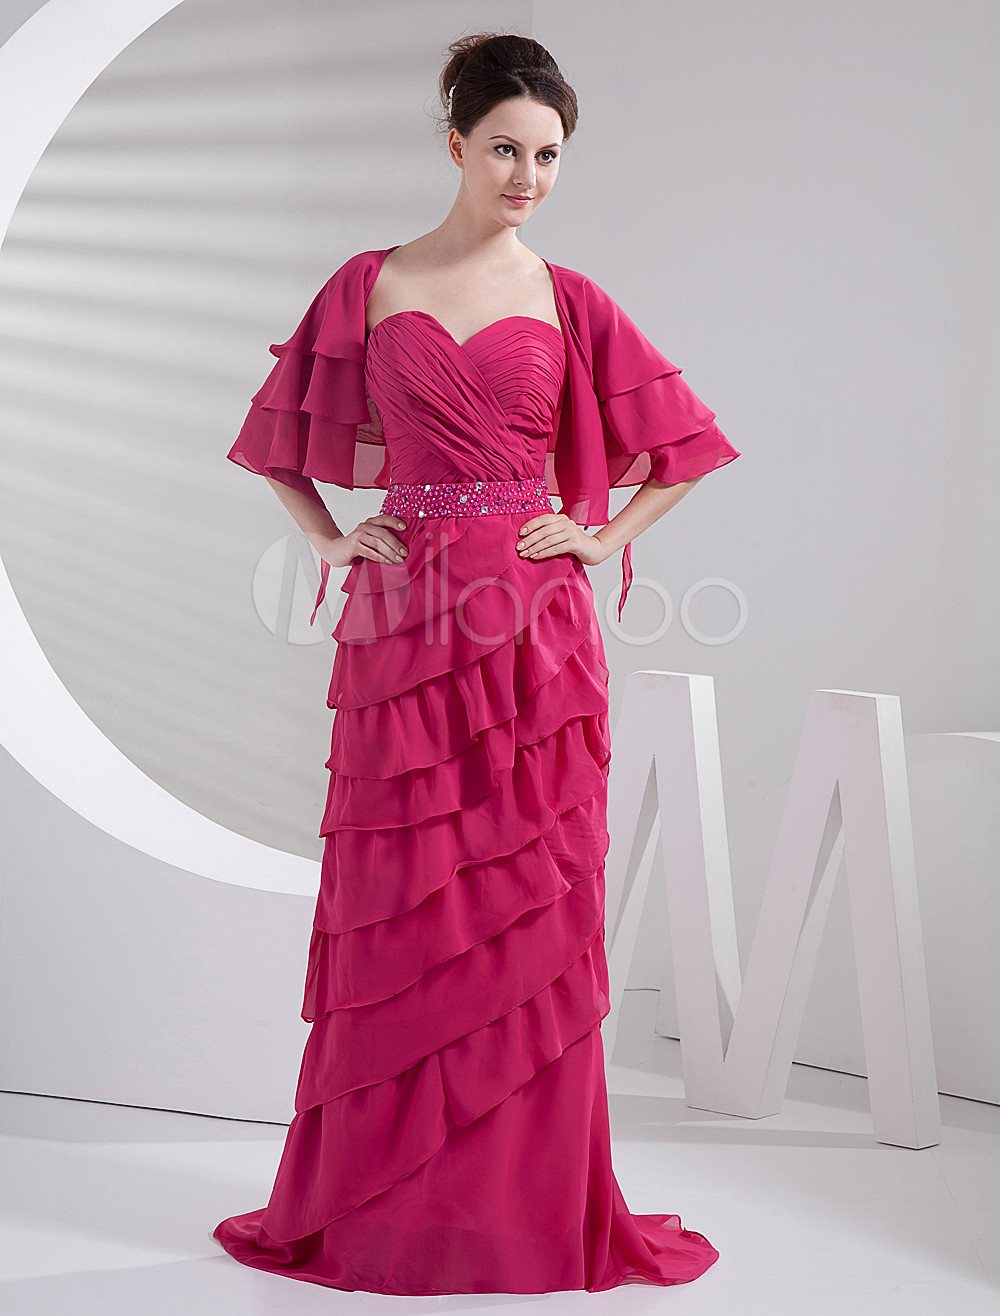 Rose Strapless Sweetheart Multi-Layer Chiffon Floor Length Bridesmaid Dresses